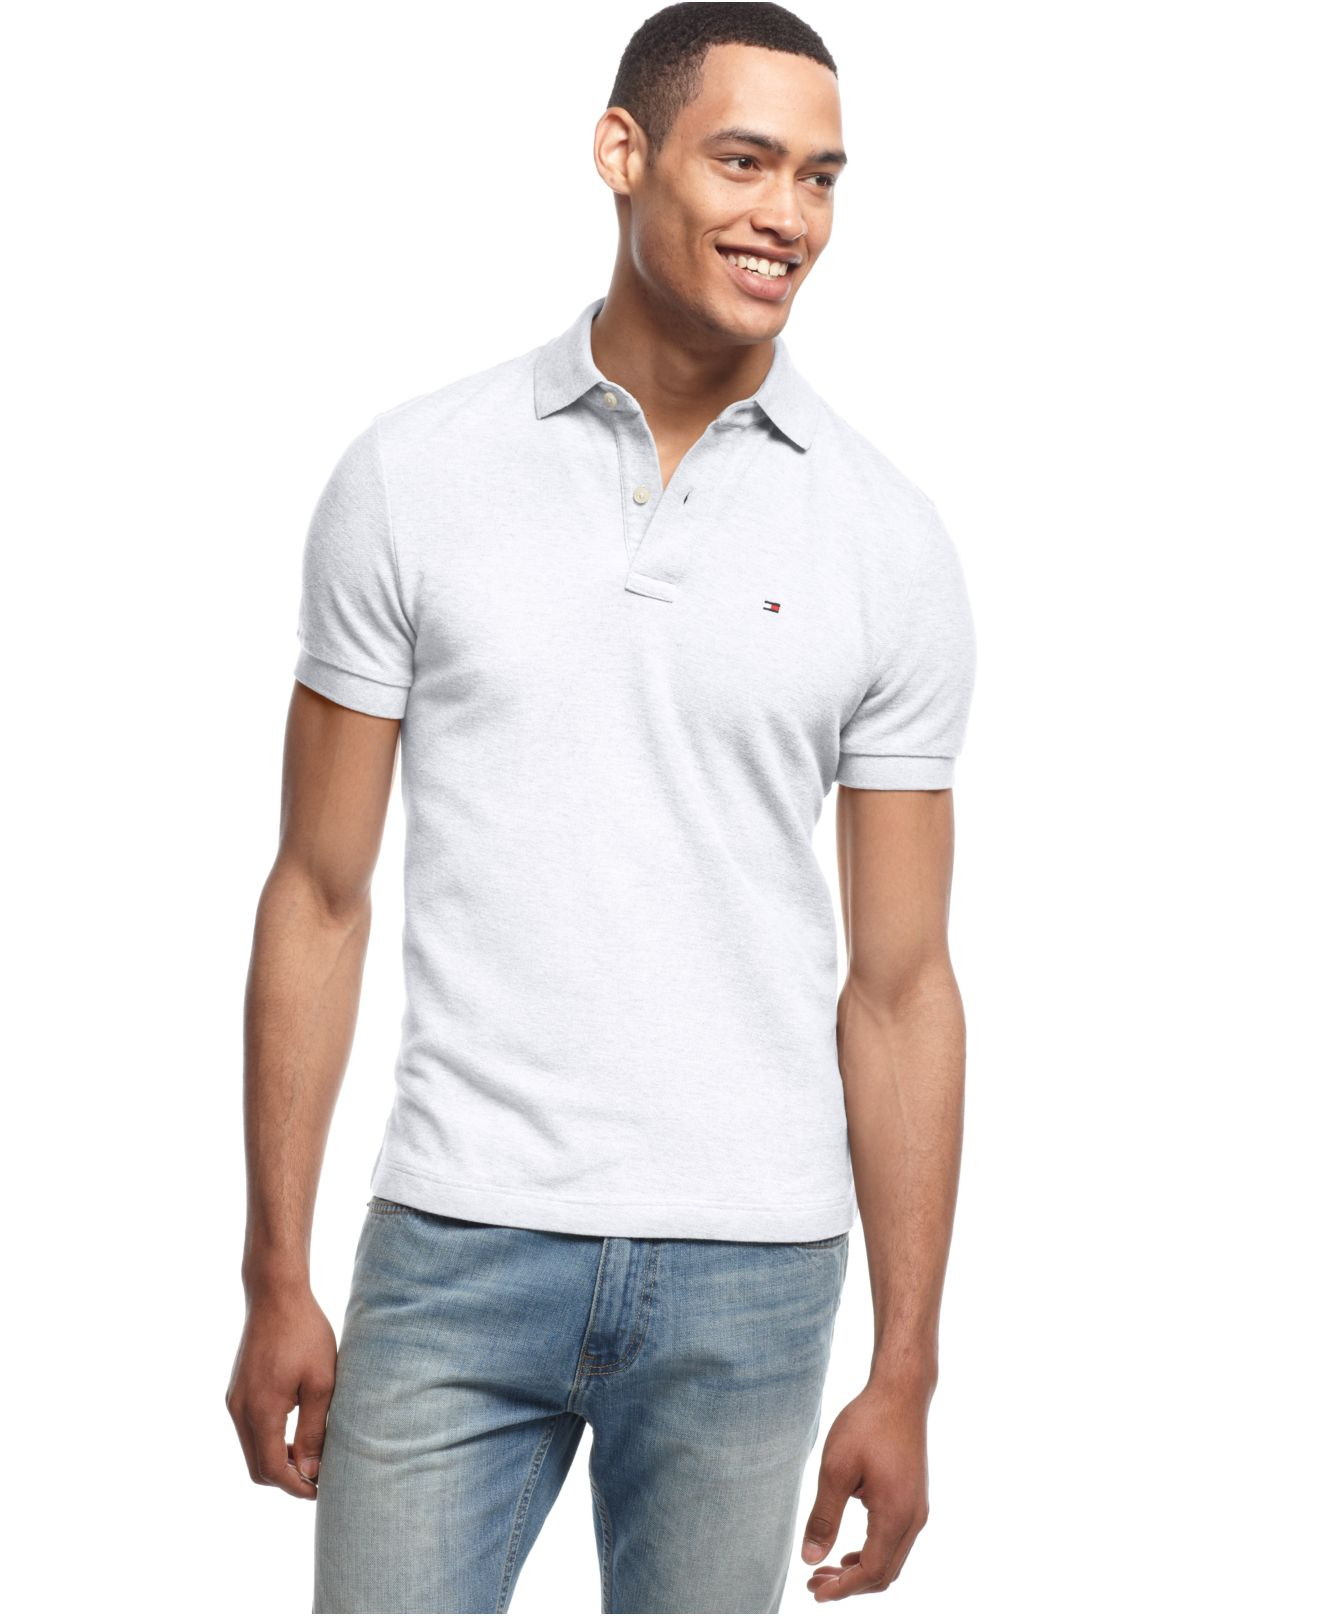 8e9775a20 Tommy Hilfiger Custom Fit Ivy Polo in White for Men - Lyst